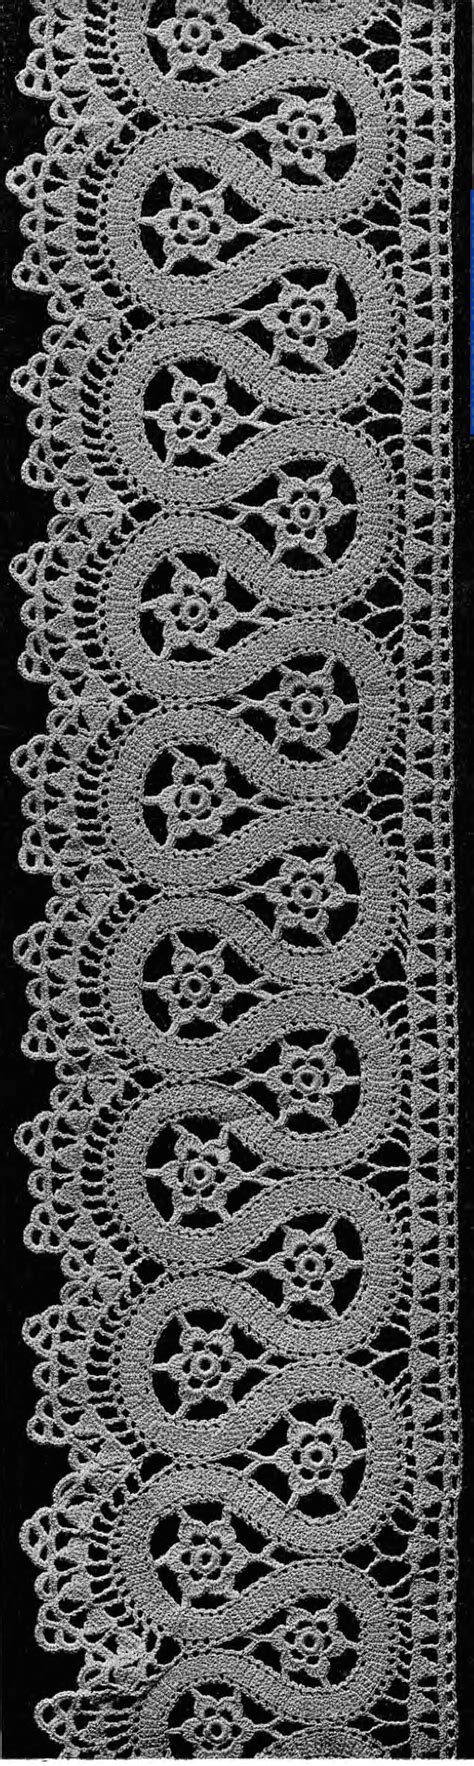 antique pattern library bobbin lace crochet lace booklet in the public domain from madame